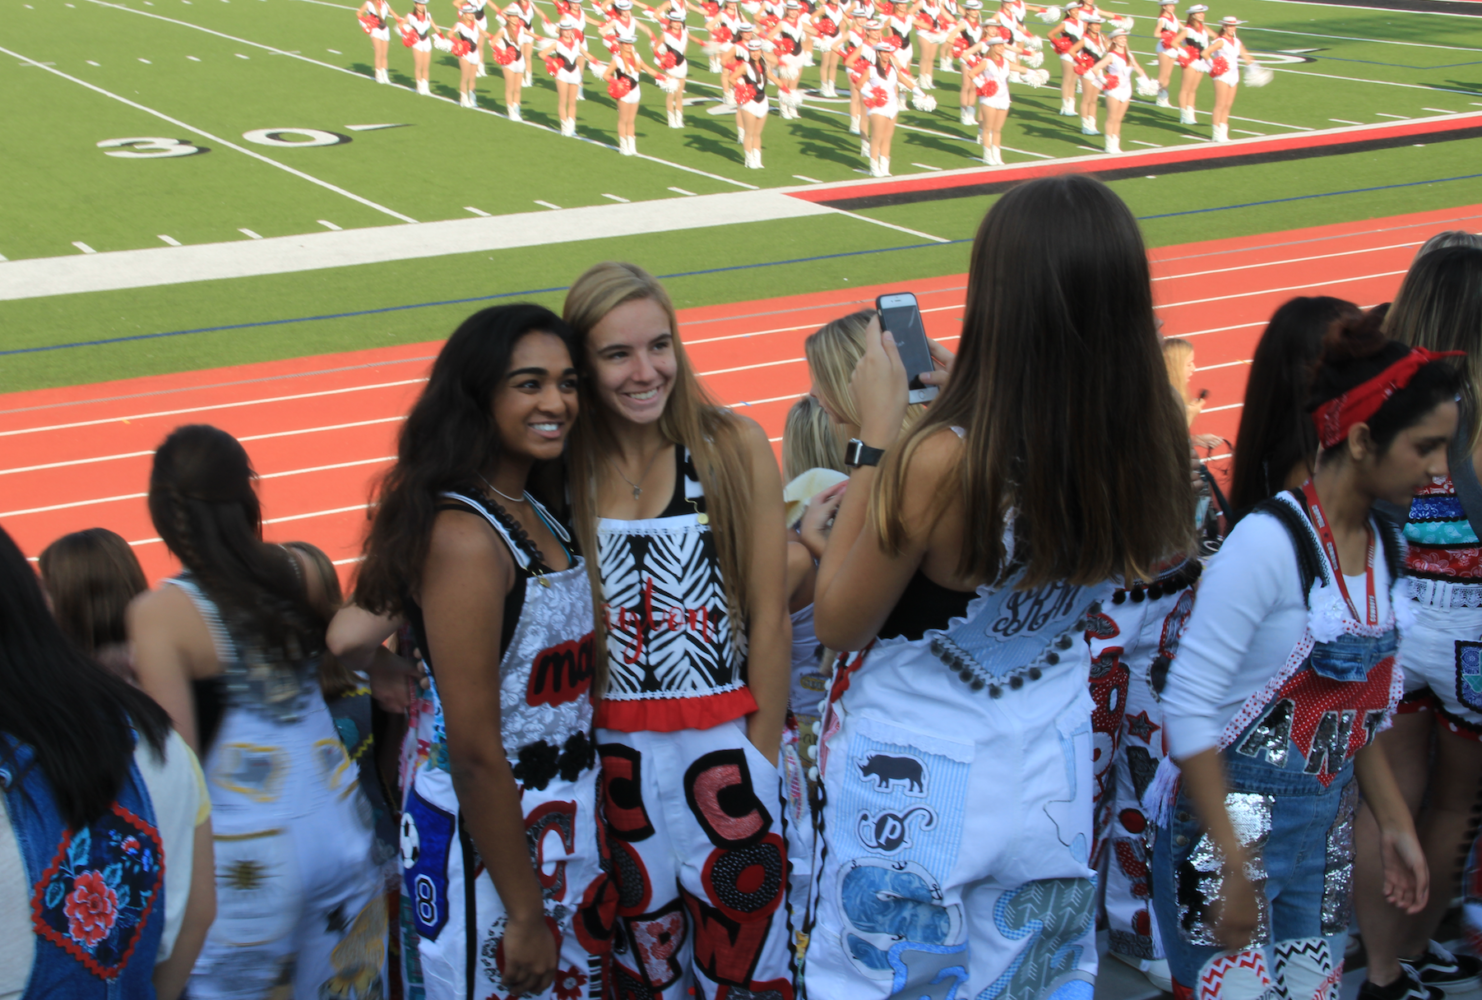 Coppell High School seniors Maya Joseph and Payton Kirk pose on Sept. 8 during the first pep rally of the year wearing their senior overalls. Senior overalls are worn during the school day before Friday night home football games and have been a tradition among schools in Texas.